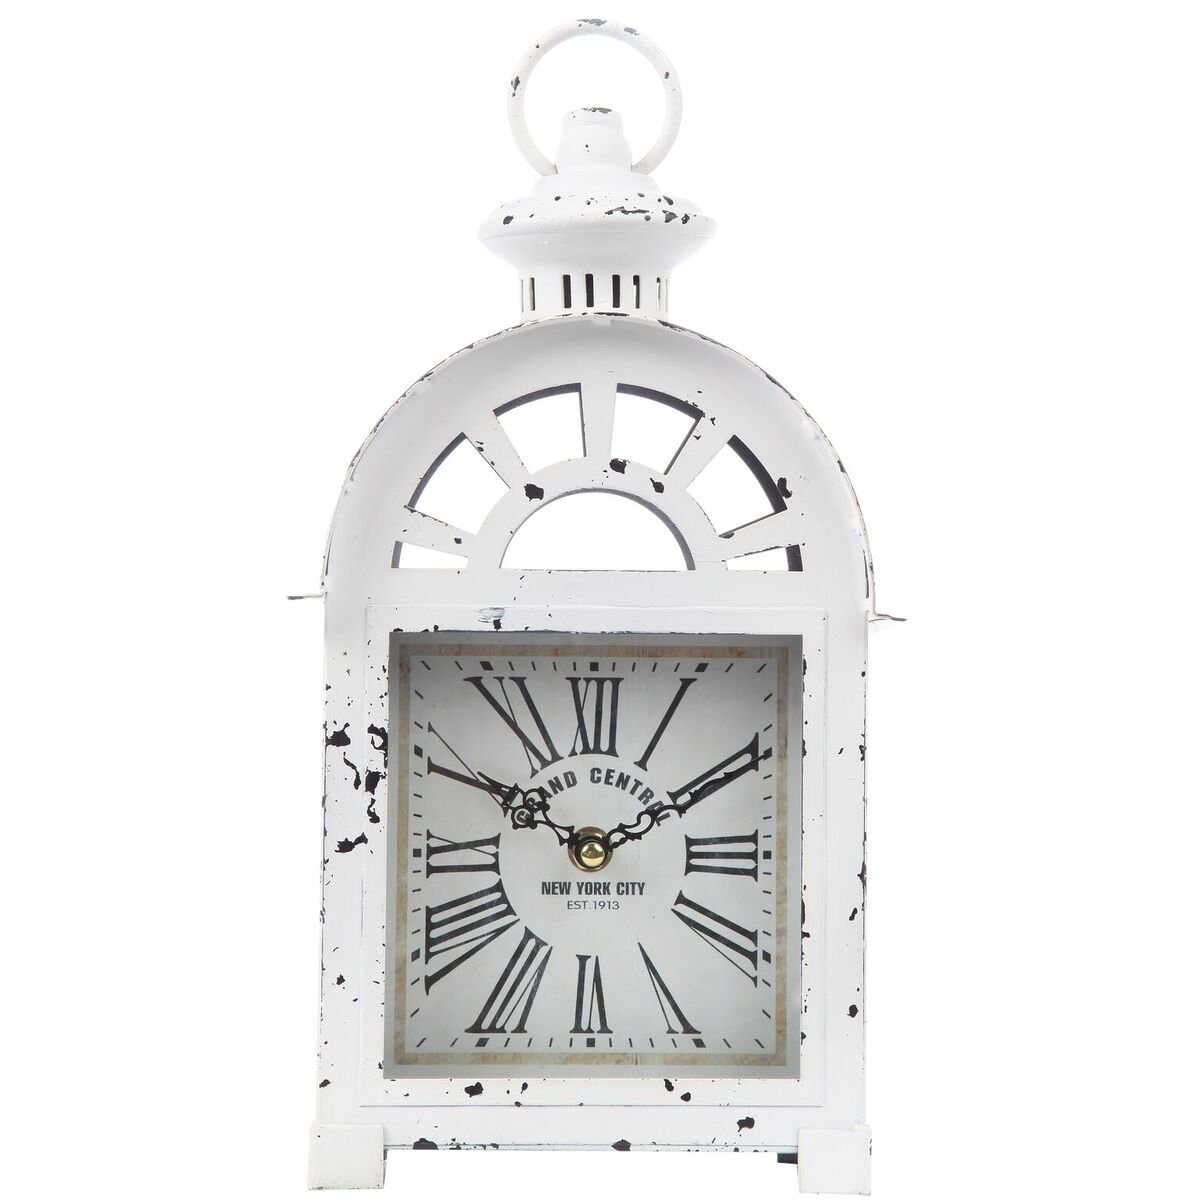 "Lily's Home Vintage Inspired Lantern Grand Central New York City Train Station-Style Mantle Clock, Battery Powered with Quartz Movement, Fits with Victorian or Antique Décor Theme (13 3/4"" Tall)"